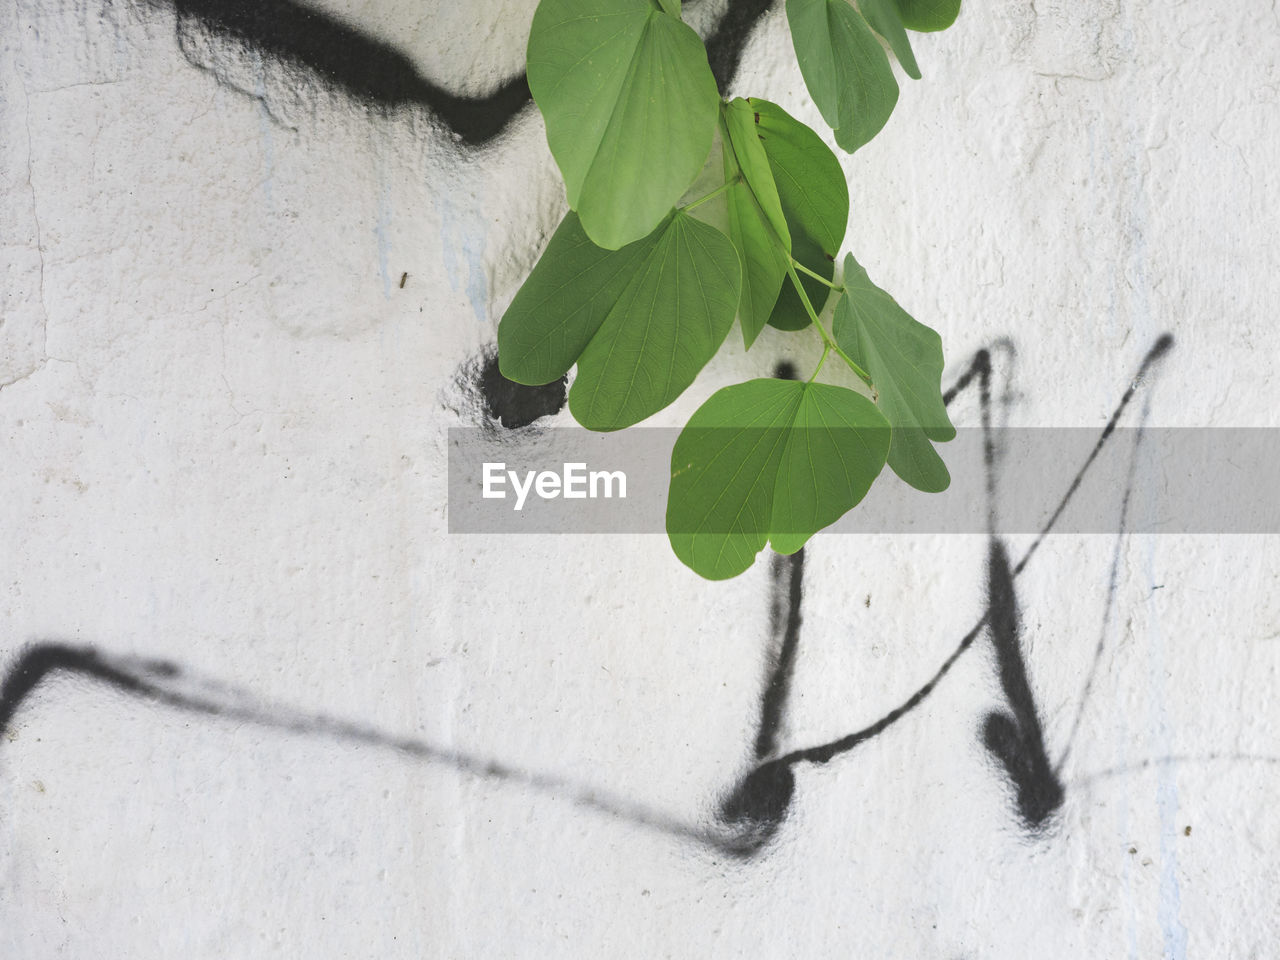 leaf, plant, growth, nature, day, no people, outdoors, architecture, close-up, building exterior